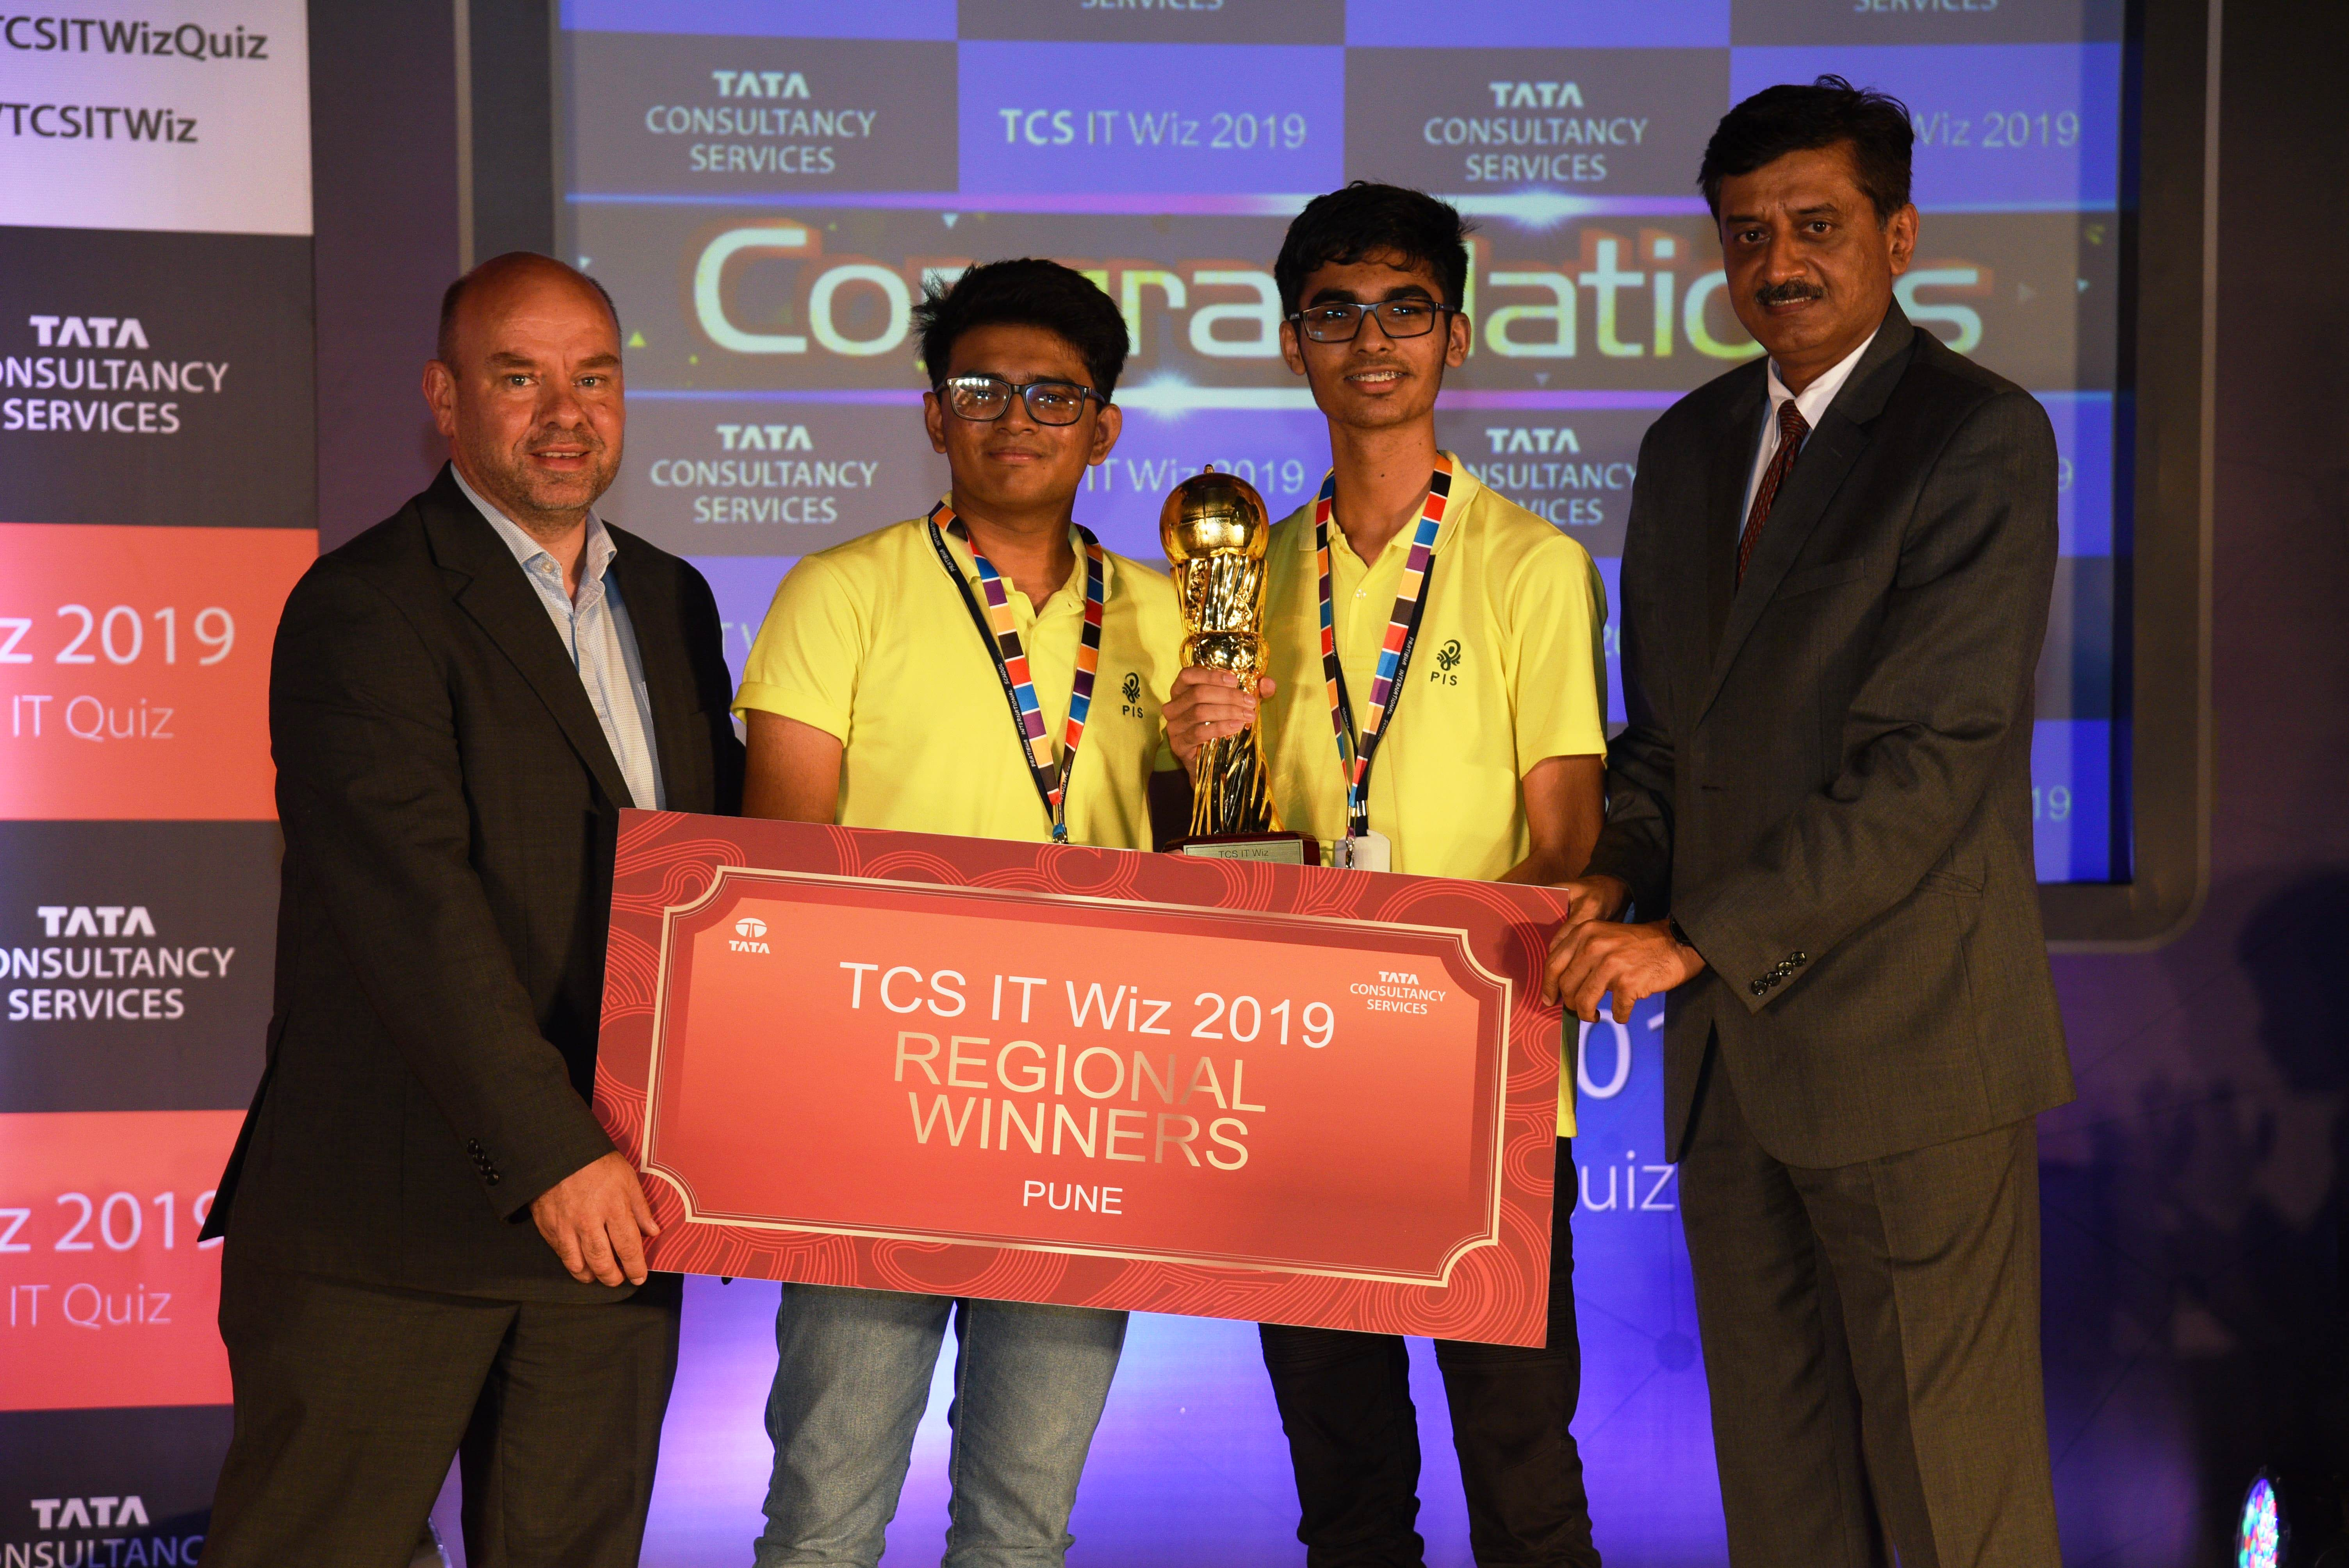 Pratibha International School Wins the Pune Edition of TCS IT Wiz 2019